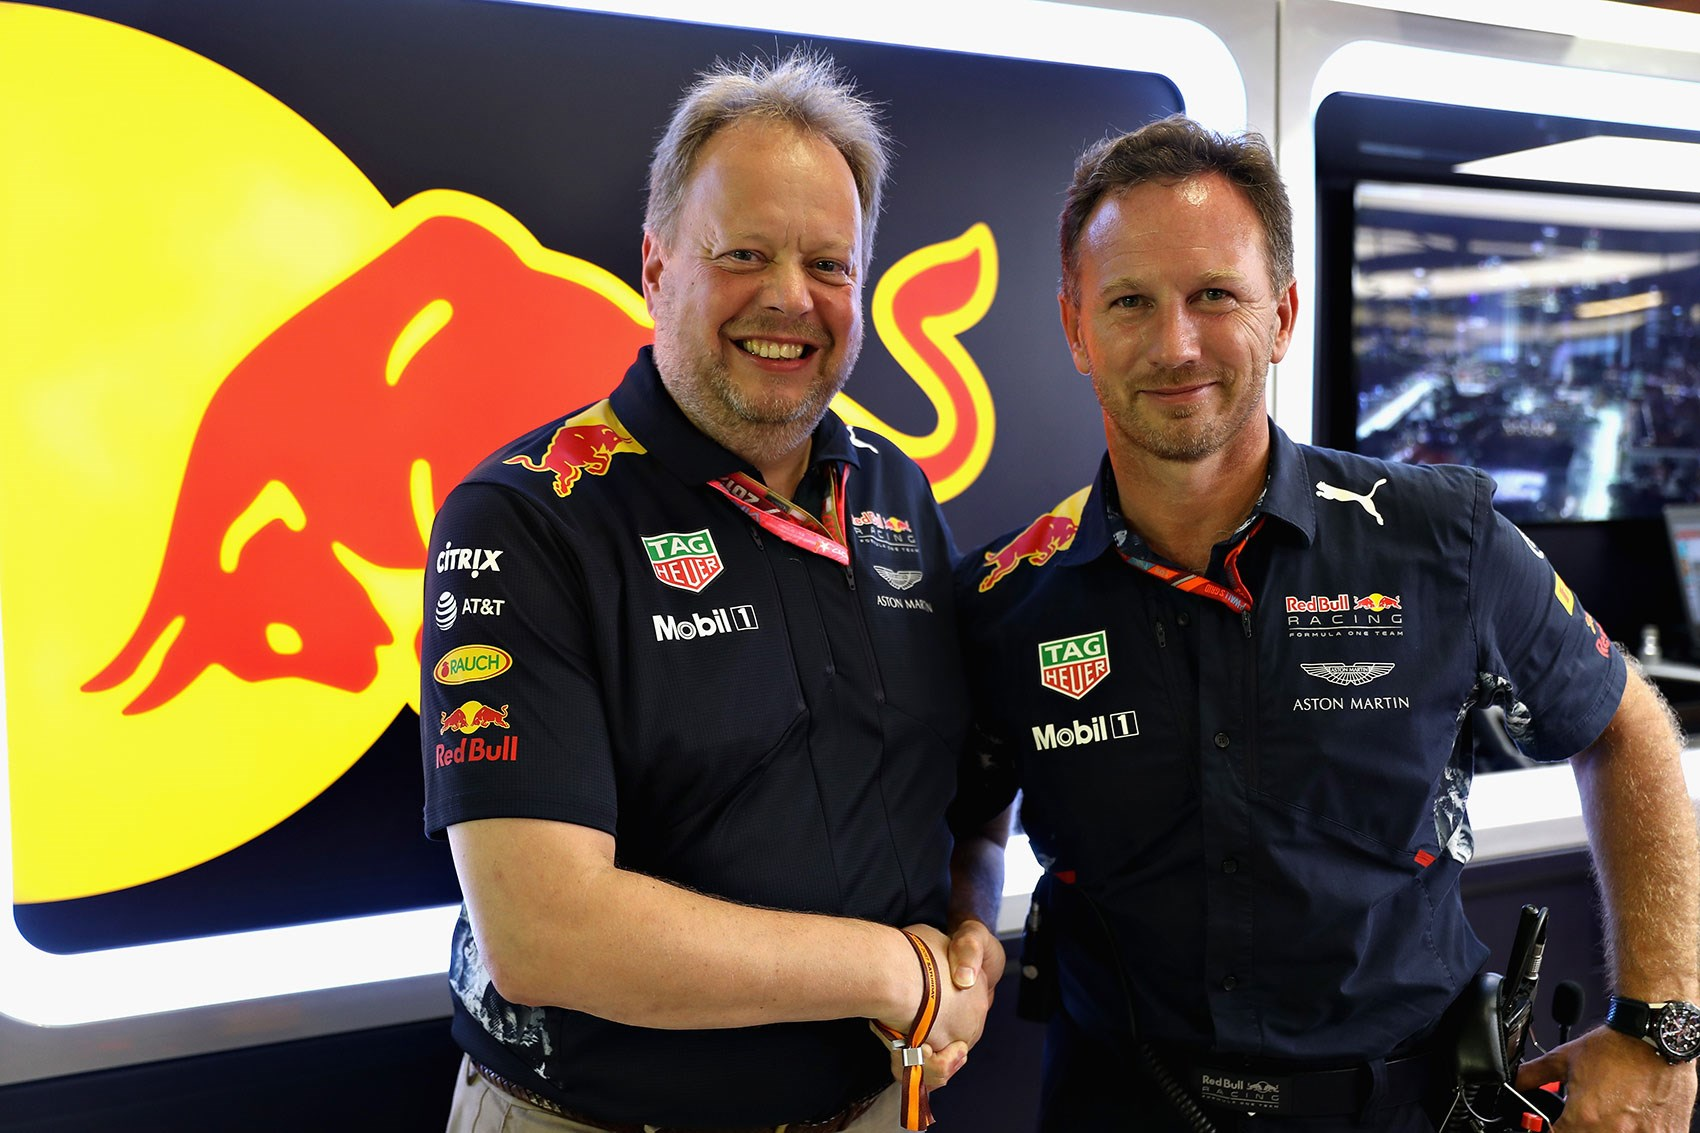 Aston Martin becomes Red Bull Racing title sponsor